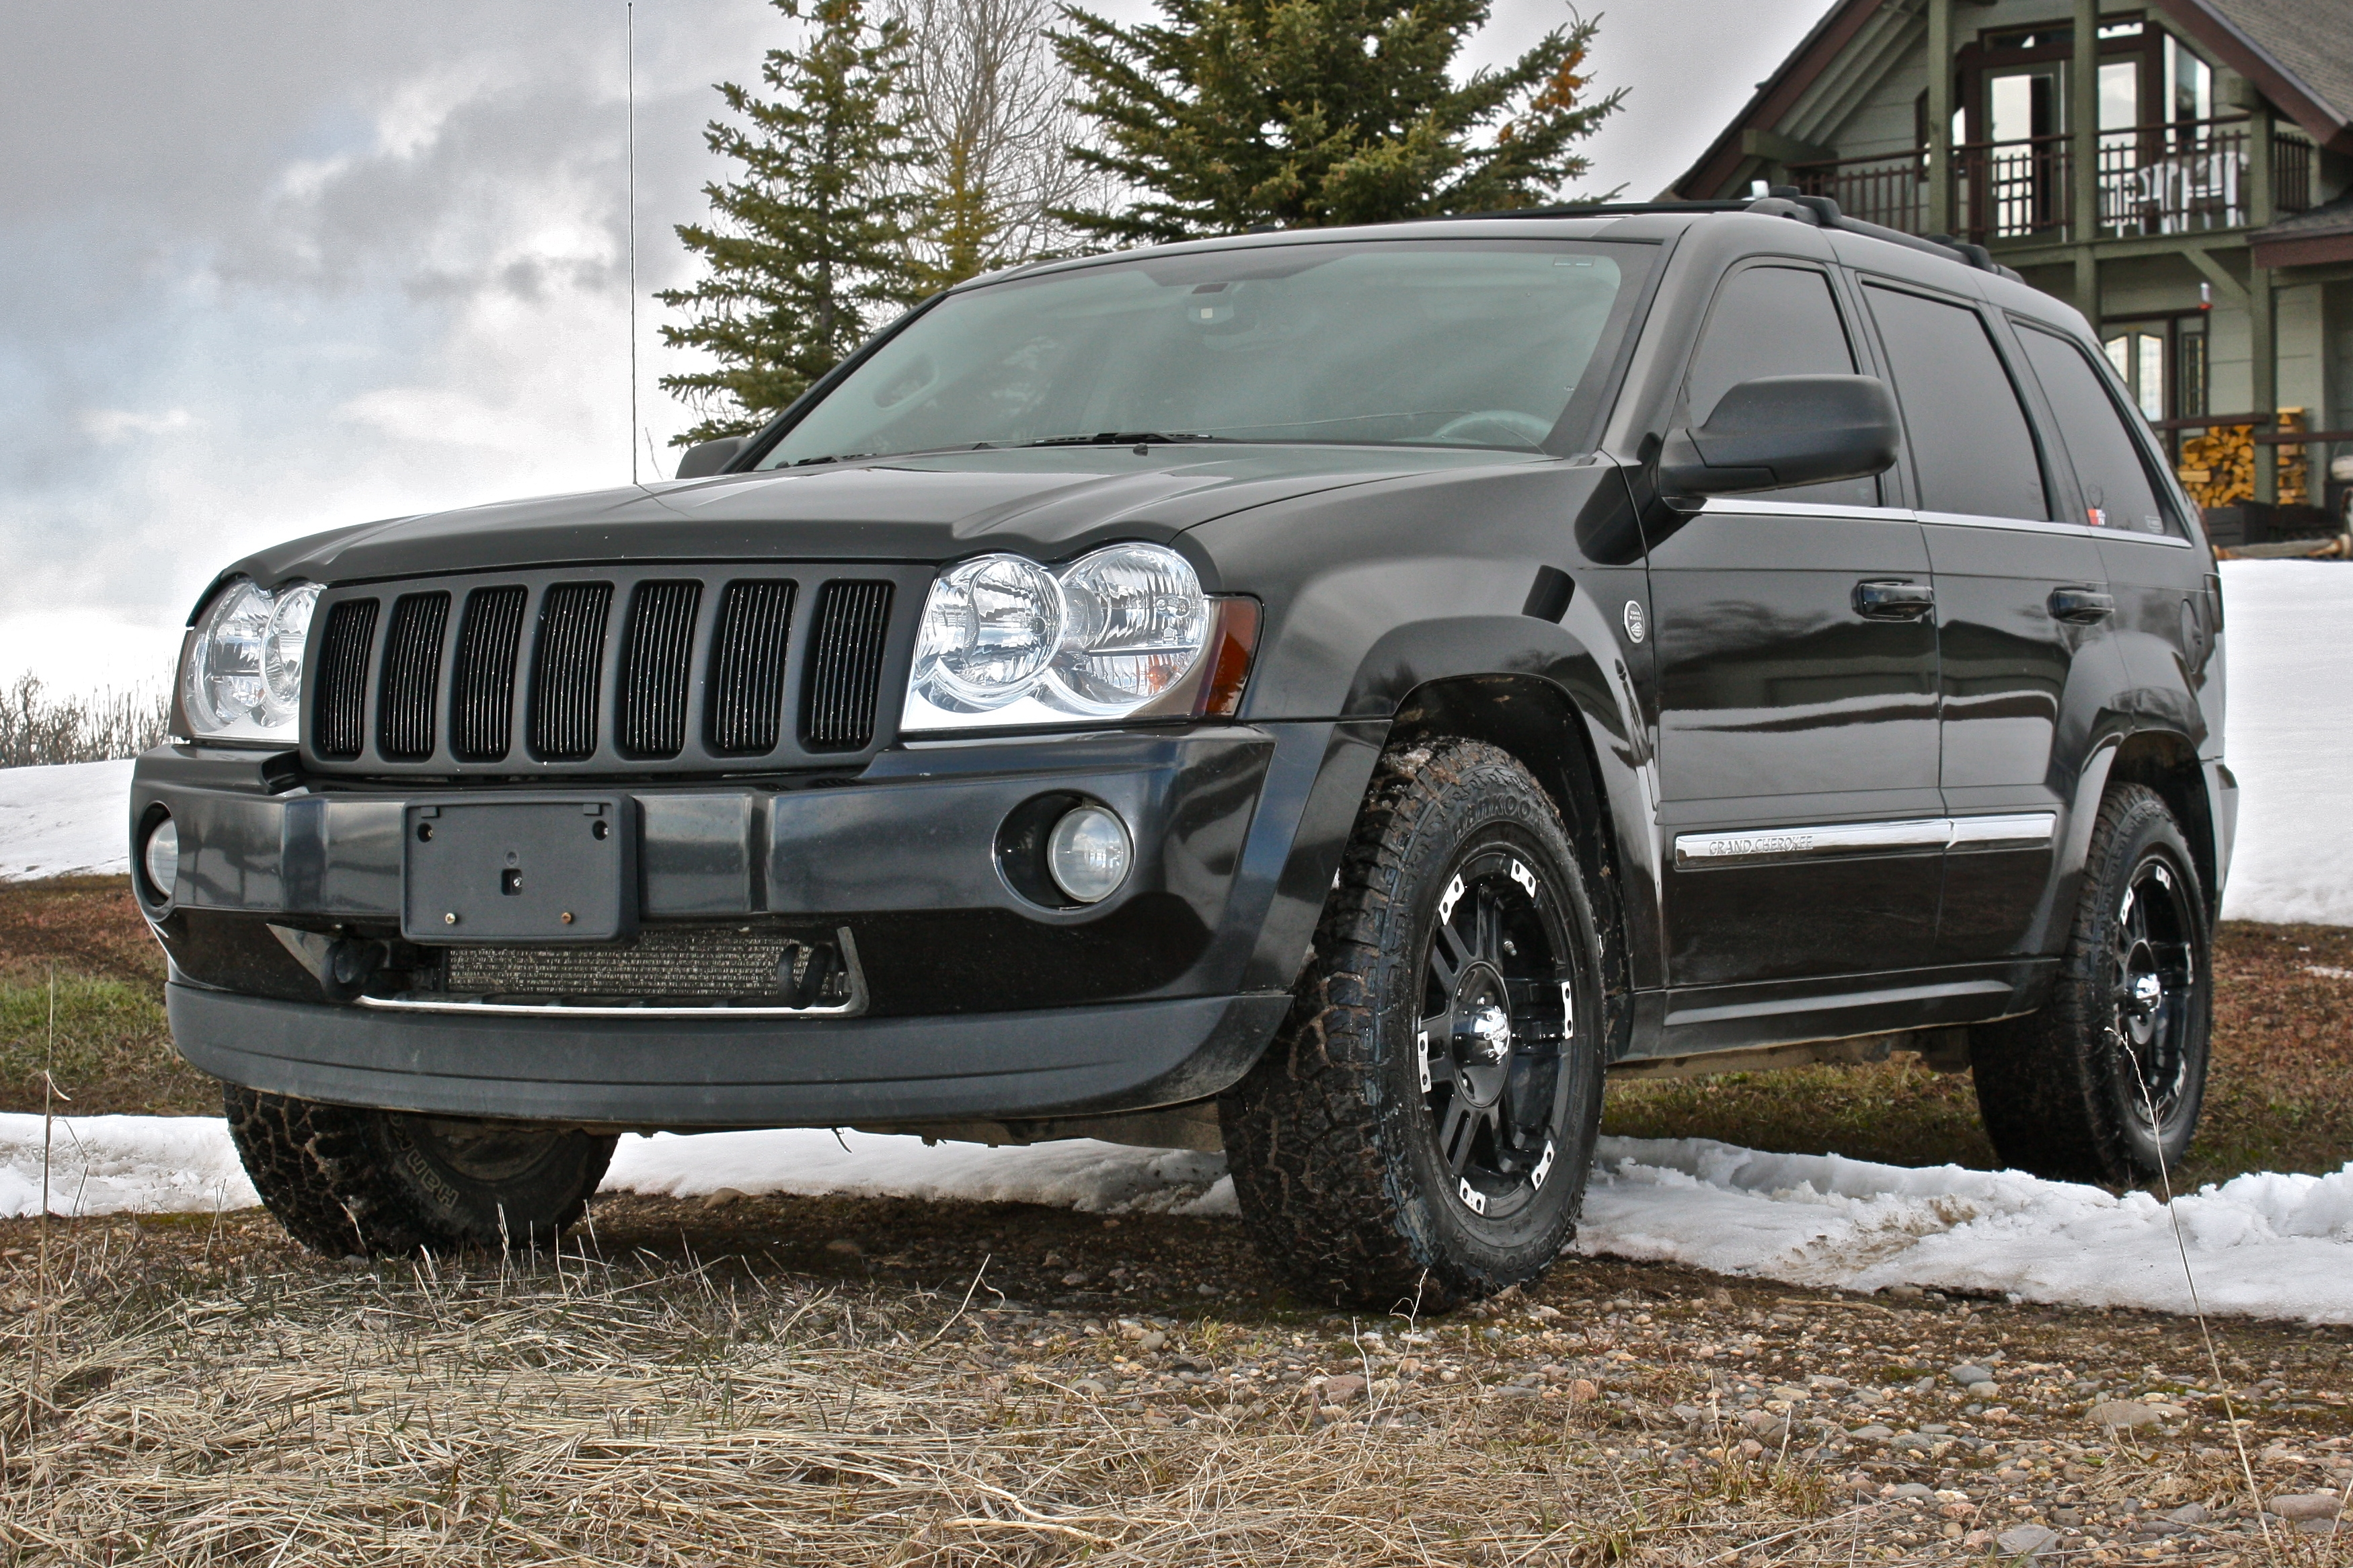 Watch further 1507 2006 Dodge Ram Mega Cab The Reaper as well 0705 8l 2005 Hummer H2 Sut together with 2014 Jeep Patriot Lift Kit besides 1502 1975 Chevy C K10 Homegrown. on 2005 jeep grand cherokee lifted